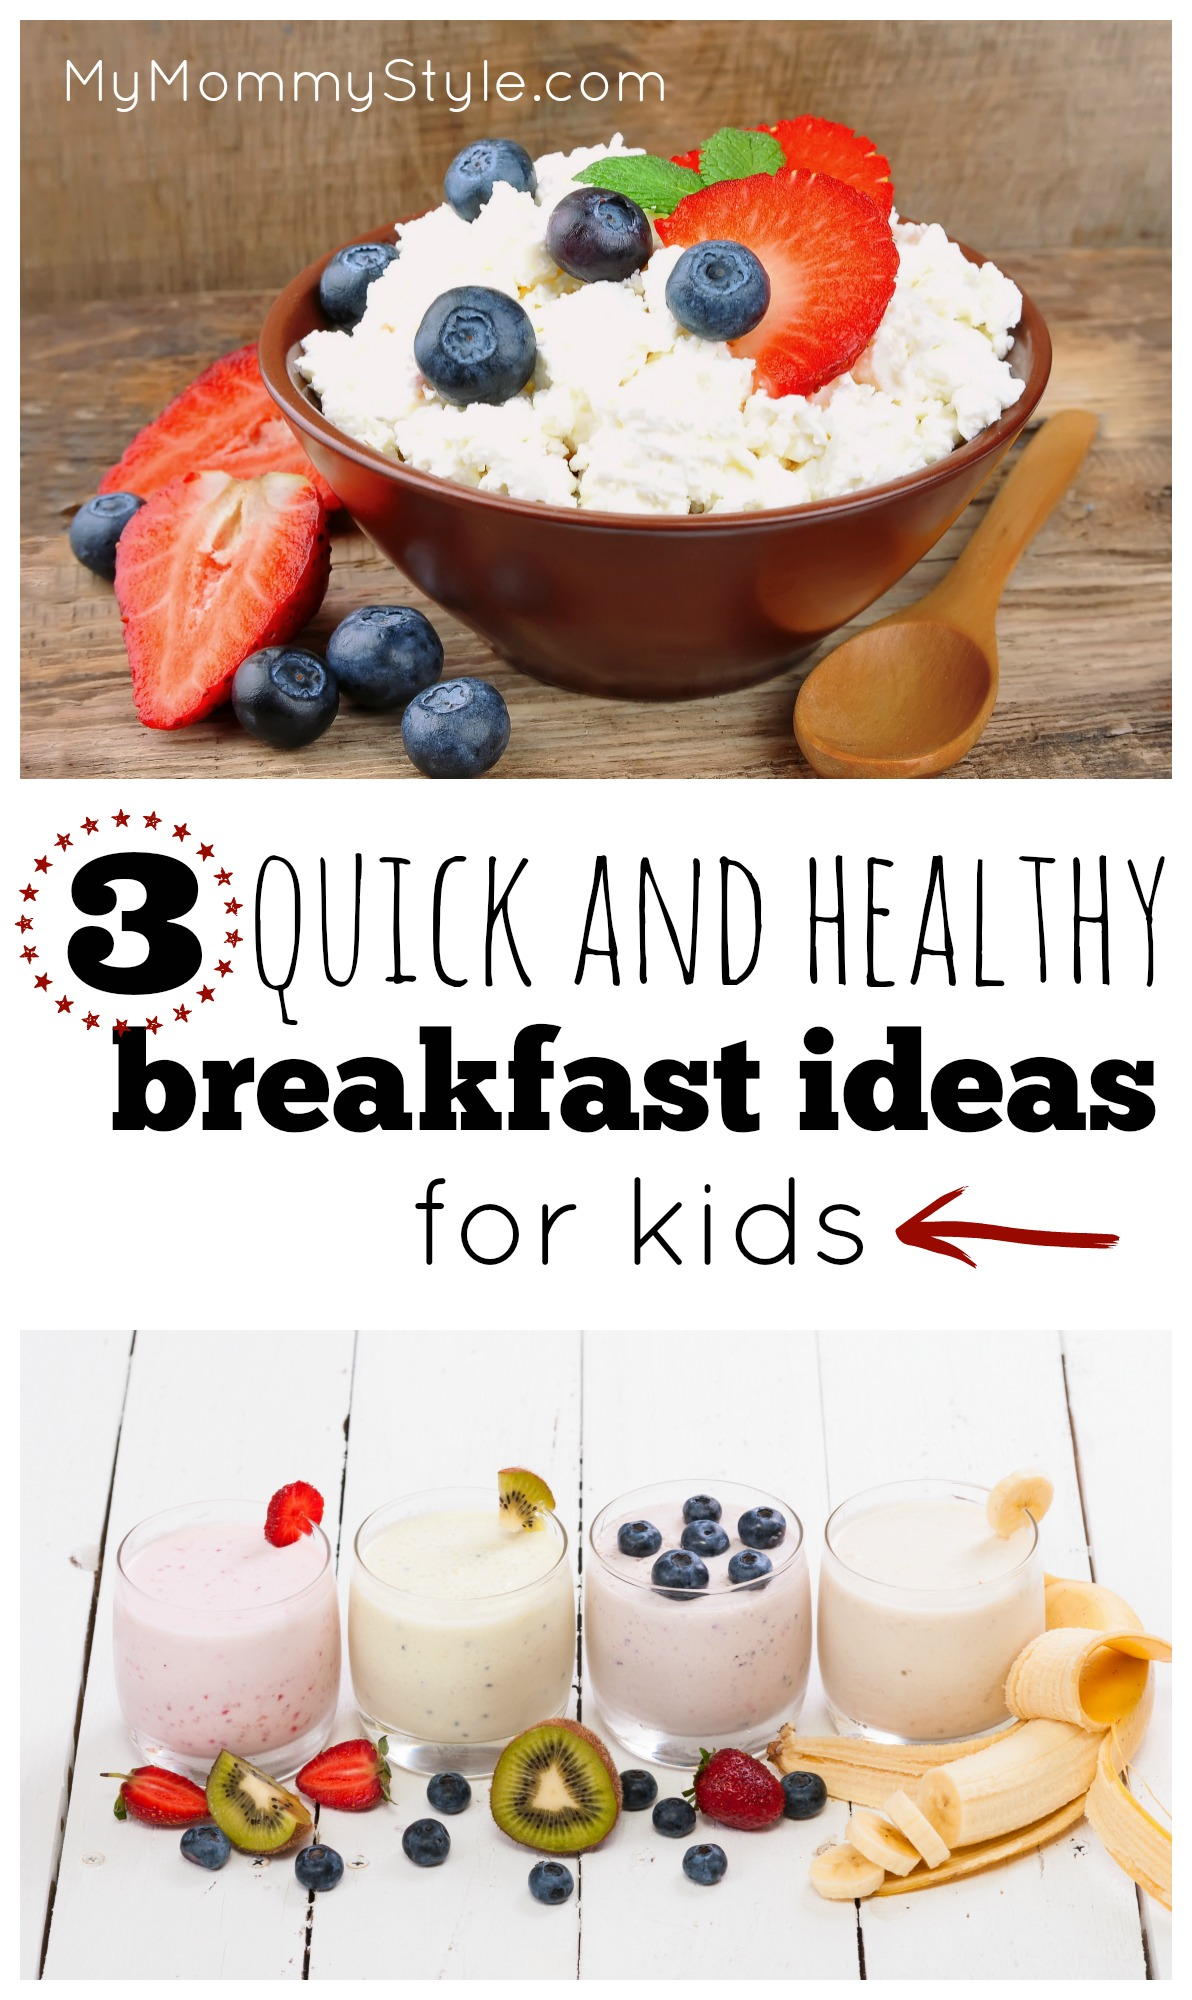 3 Simple And Healthy Breakfast Ideas My Mommy Style